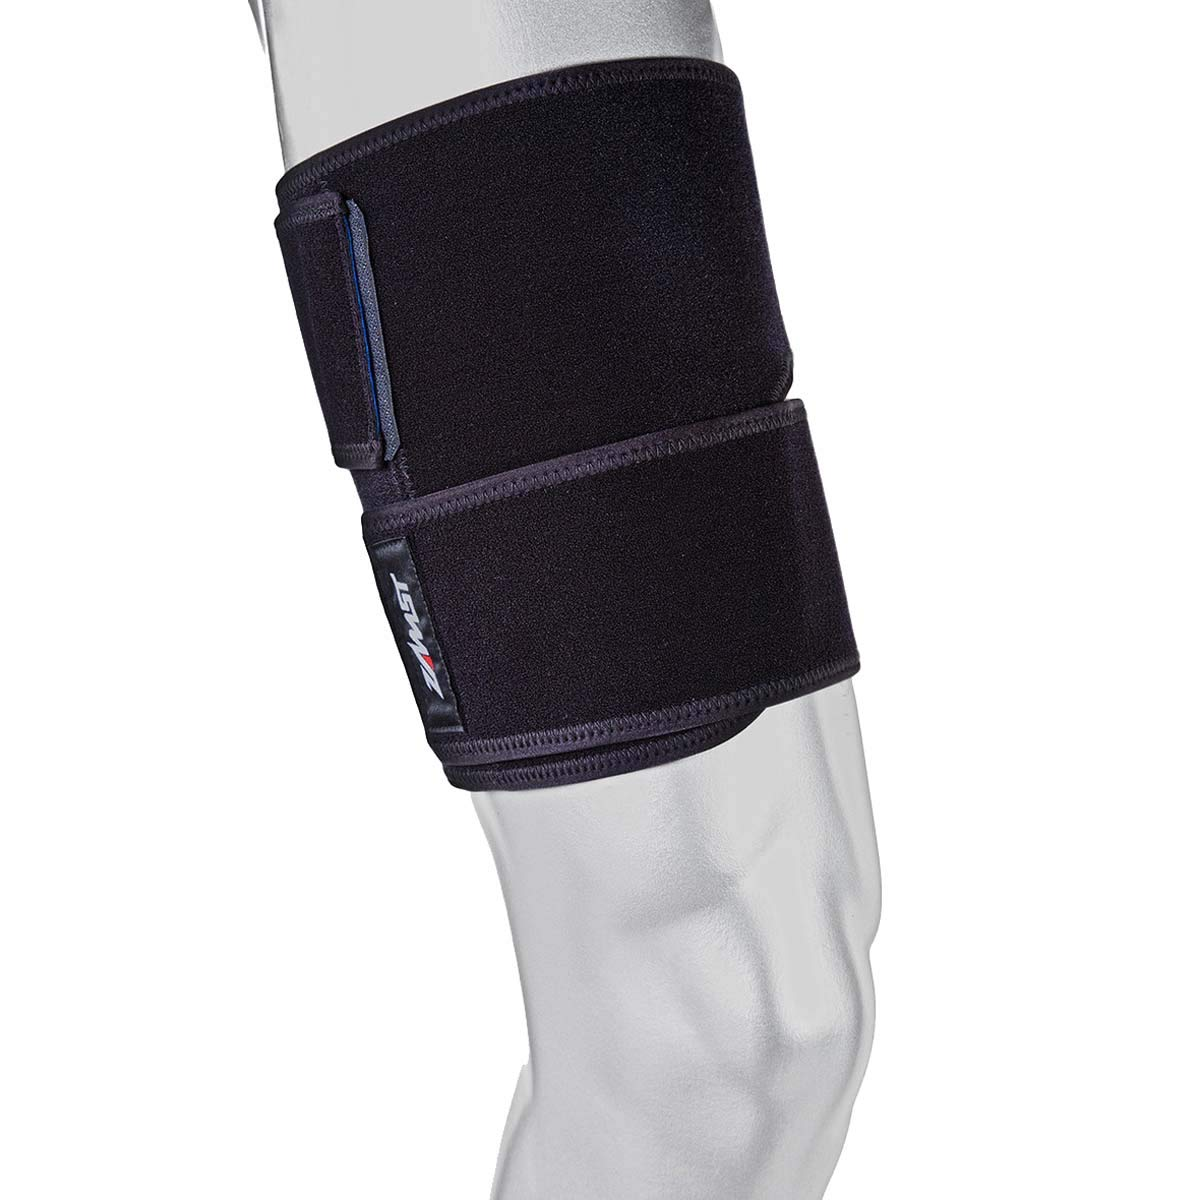 Zamst TS-1 Thigh Wrap, Large by Zamst